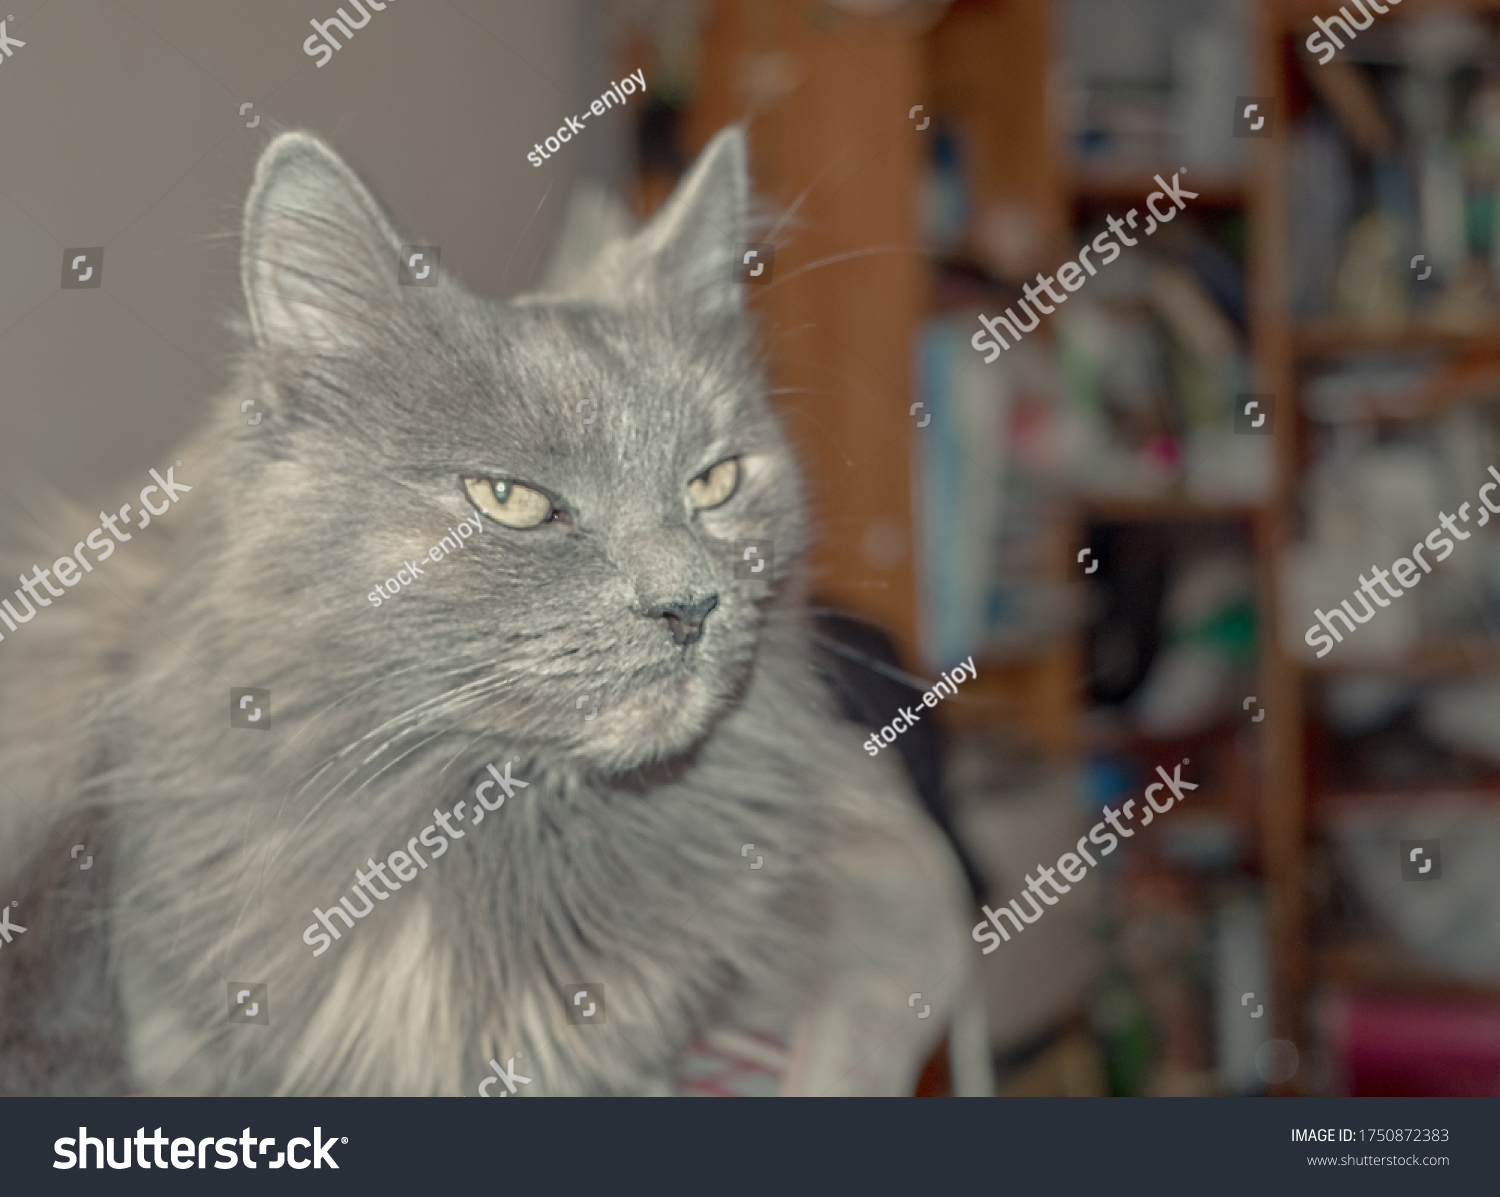 stock-photo-a-grey-cat-rests-on-an-desk-